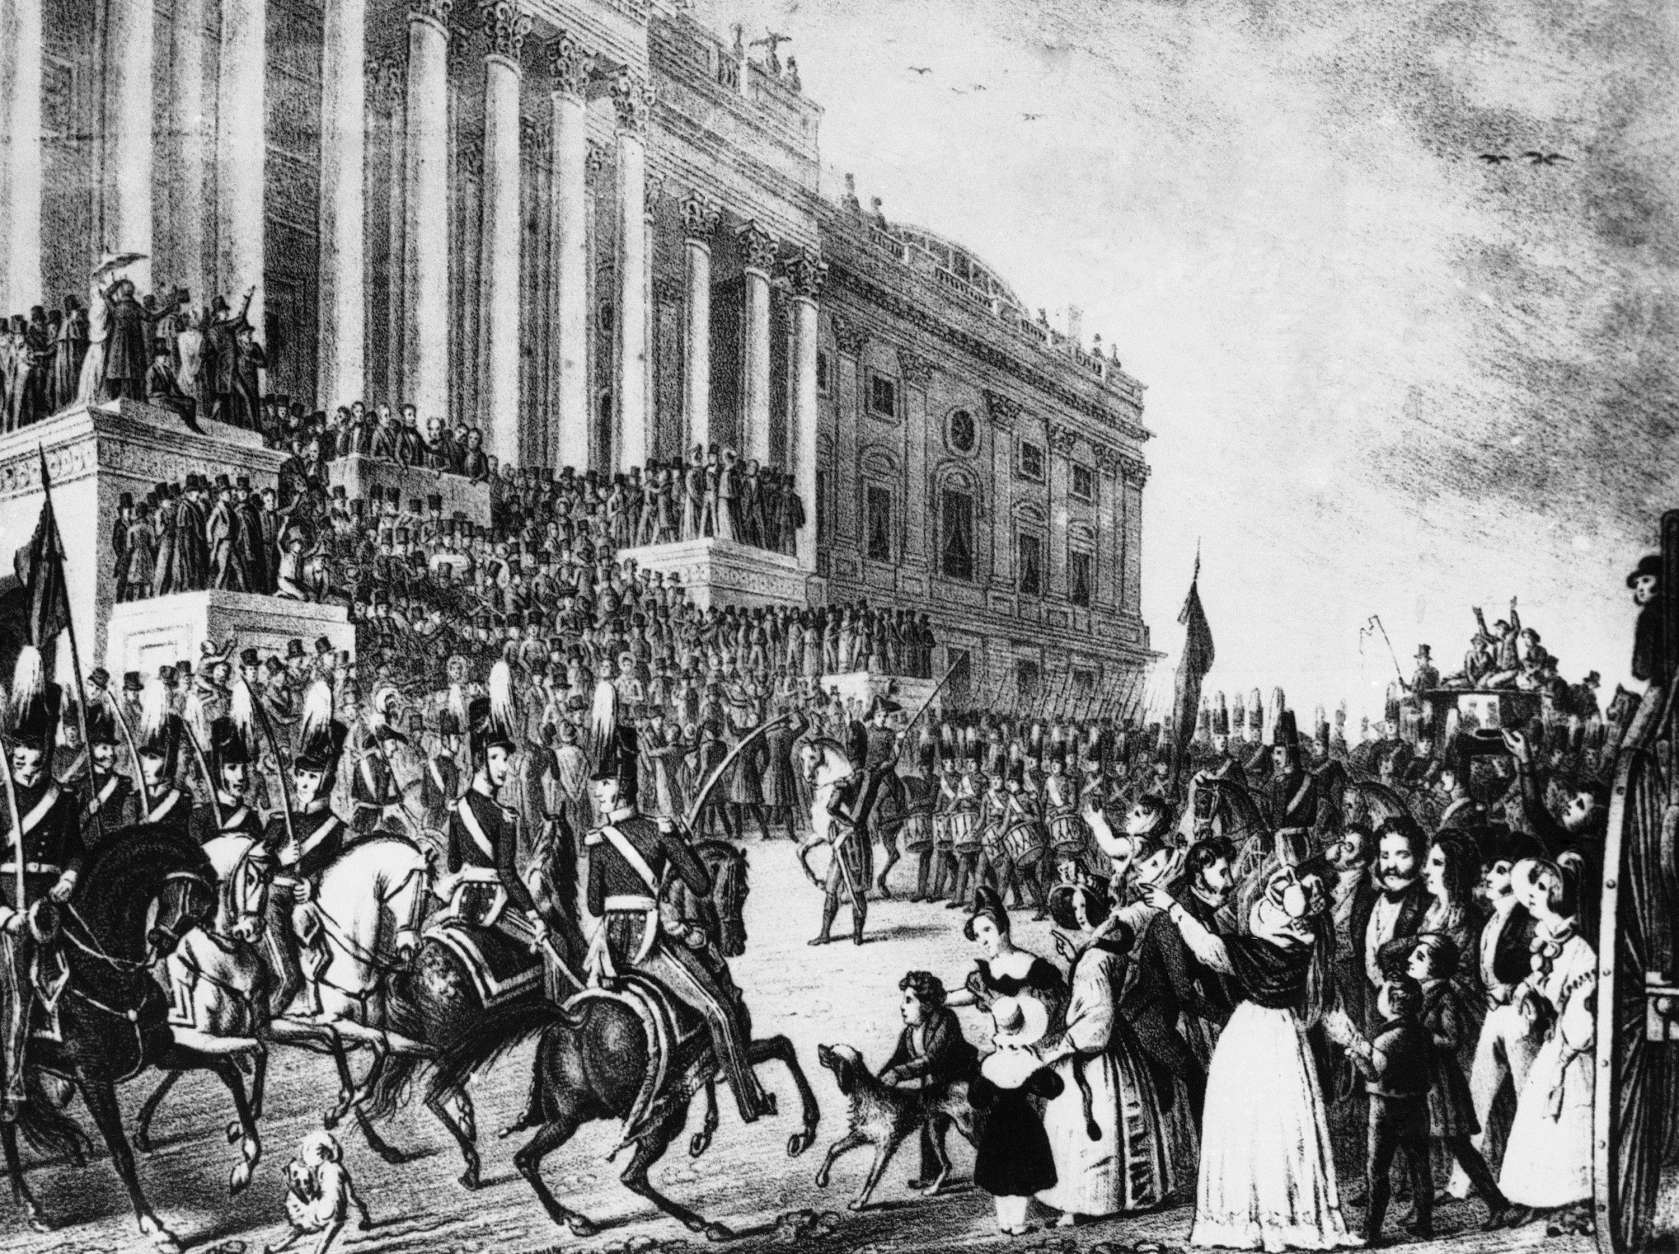 Depicted in this illustration, the inauguration of William Henry Harrison in Washington on March 4, 1841. Harrison was 68-years-old when he took office. Hatless and without an overcoat he rode horseback from the White House to the Capitol on a wintry day and stood for an hour in a raw wind while delivering his inaugural address. A month later he died of pneumonia. The artist's conception of the inauguration included some light finery which hardly matched the weather of the day. (AP Photo)